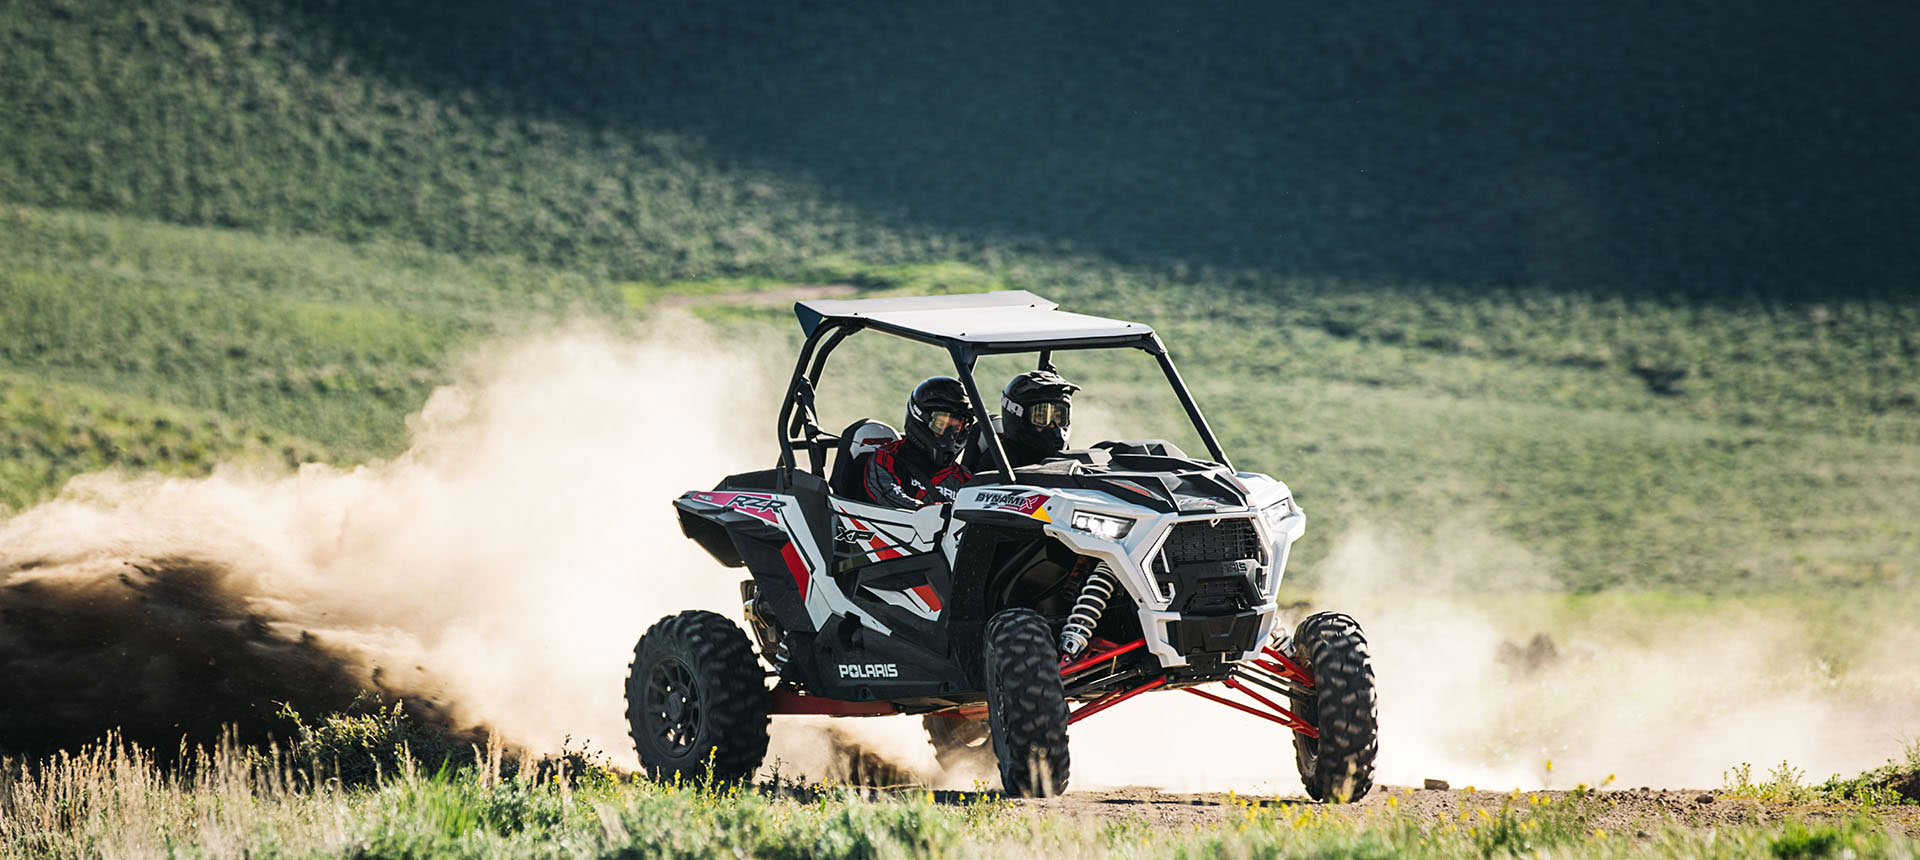 2019 Polaris RZR XP 1000 in Afton, Oklahoma - Photo 3